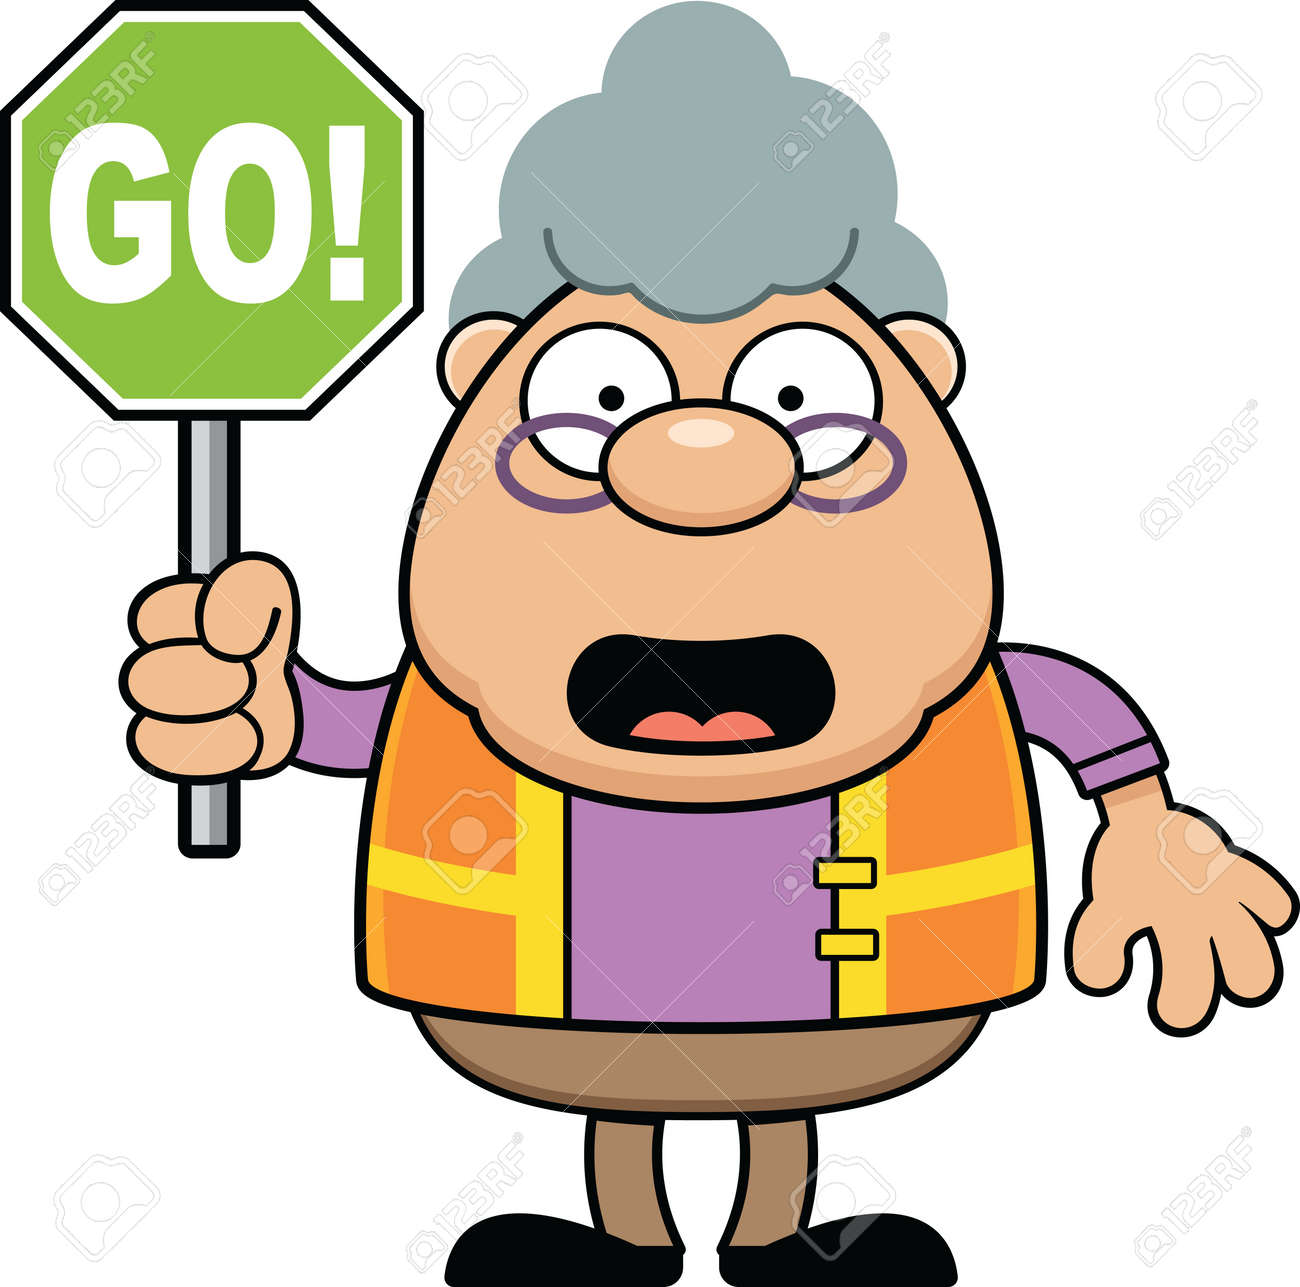 Cartoon Illustration Of A Crossing Guard With A Go Sign. Royalty ...